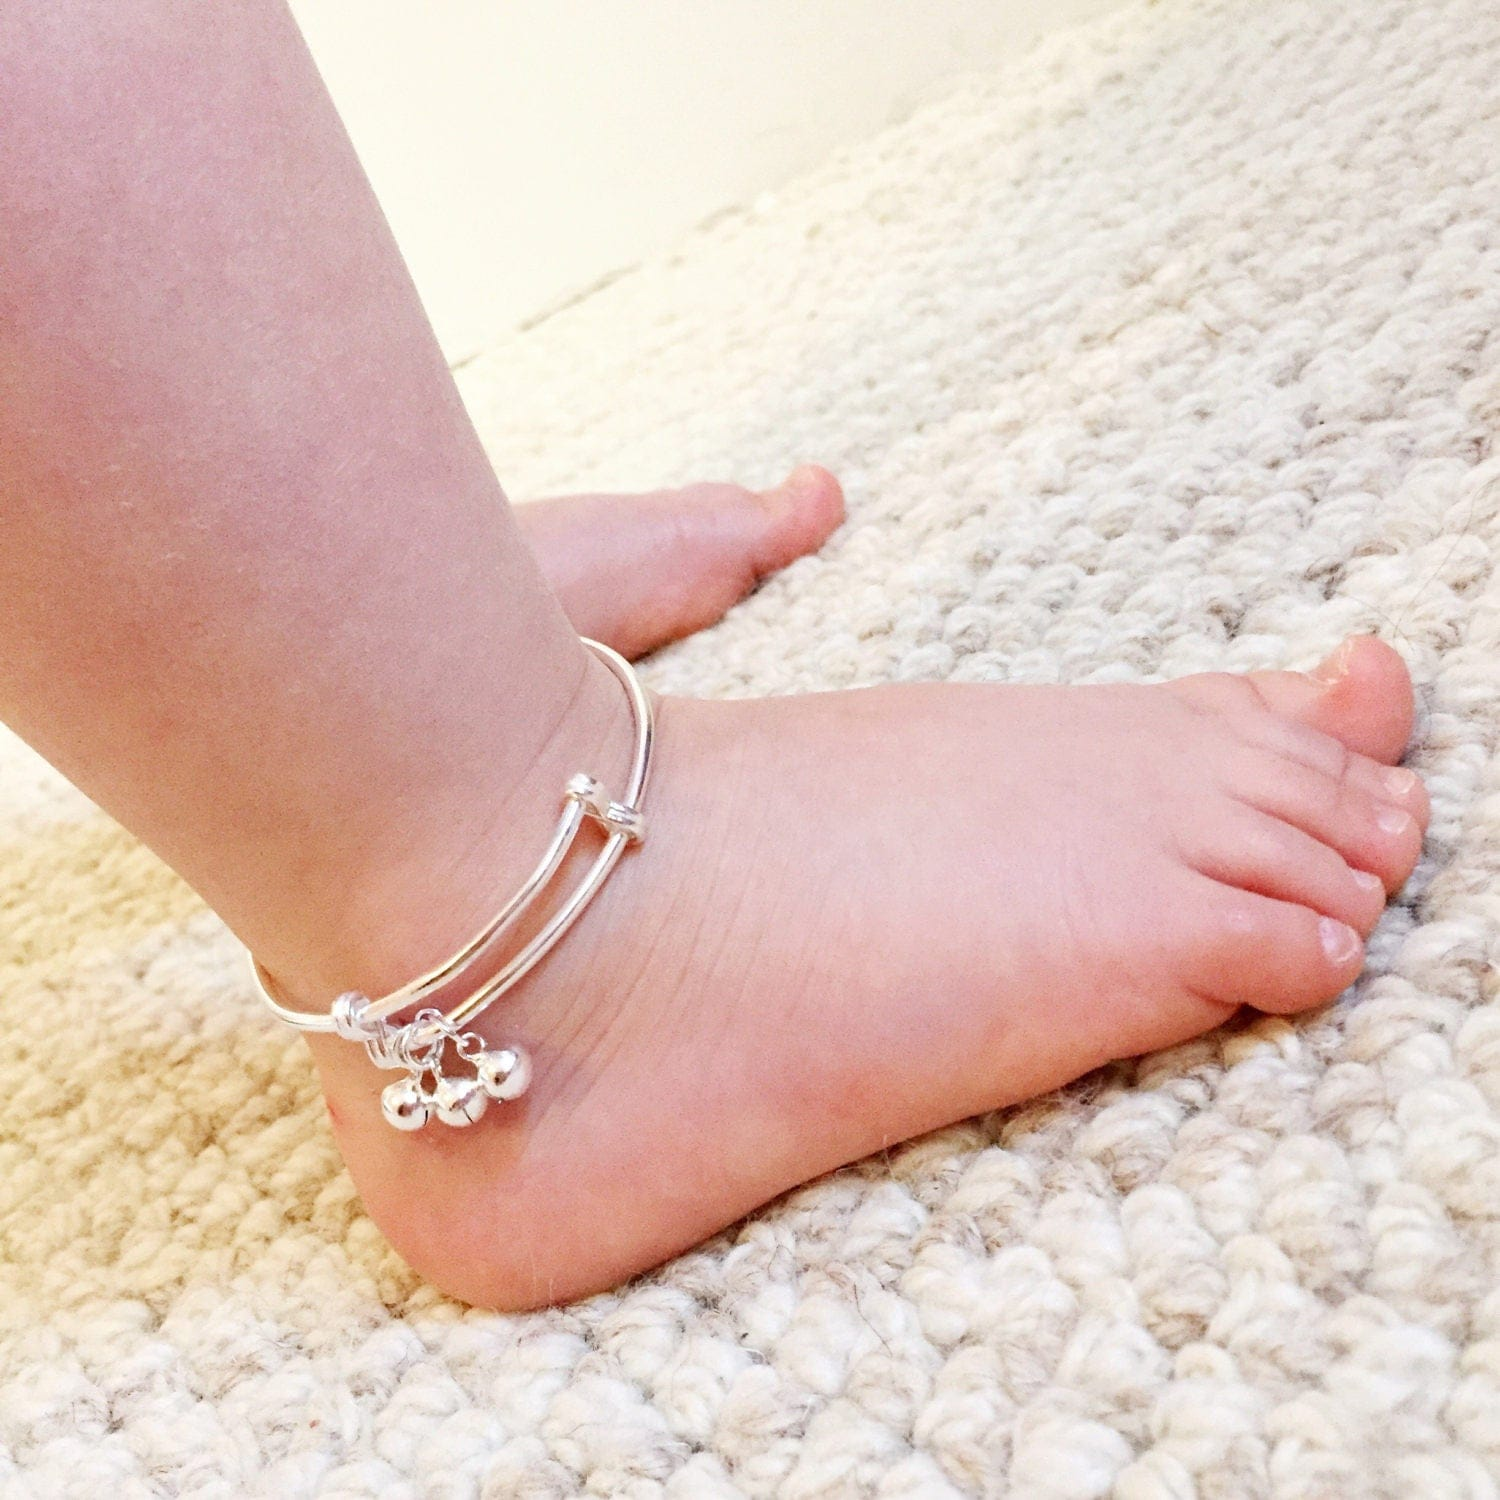 vera the barefoot bracelet sale child photography baby ankle anklet cepic by onesie photograph beach on featuring for with featured newnow footprints toddler